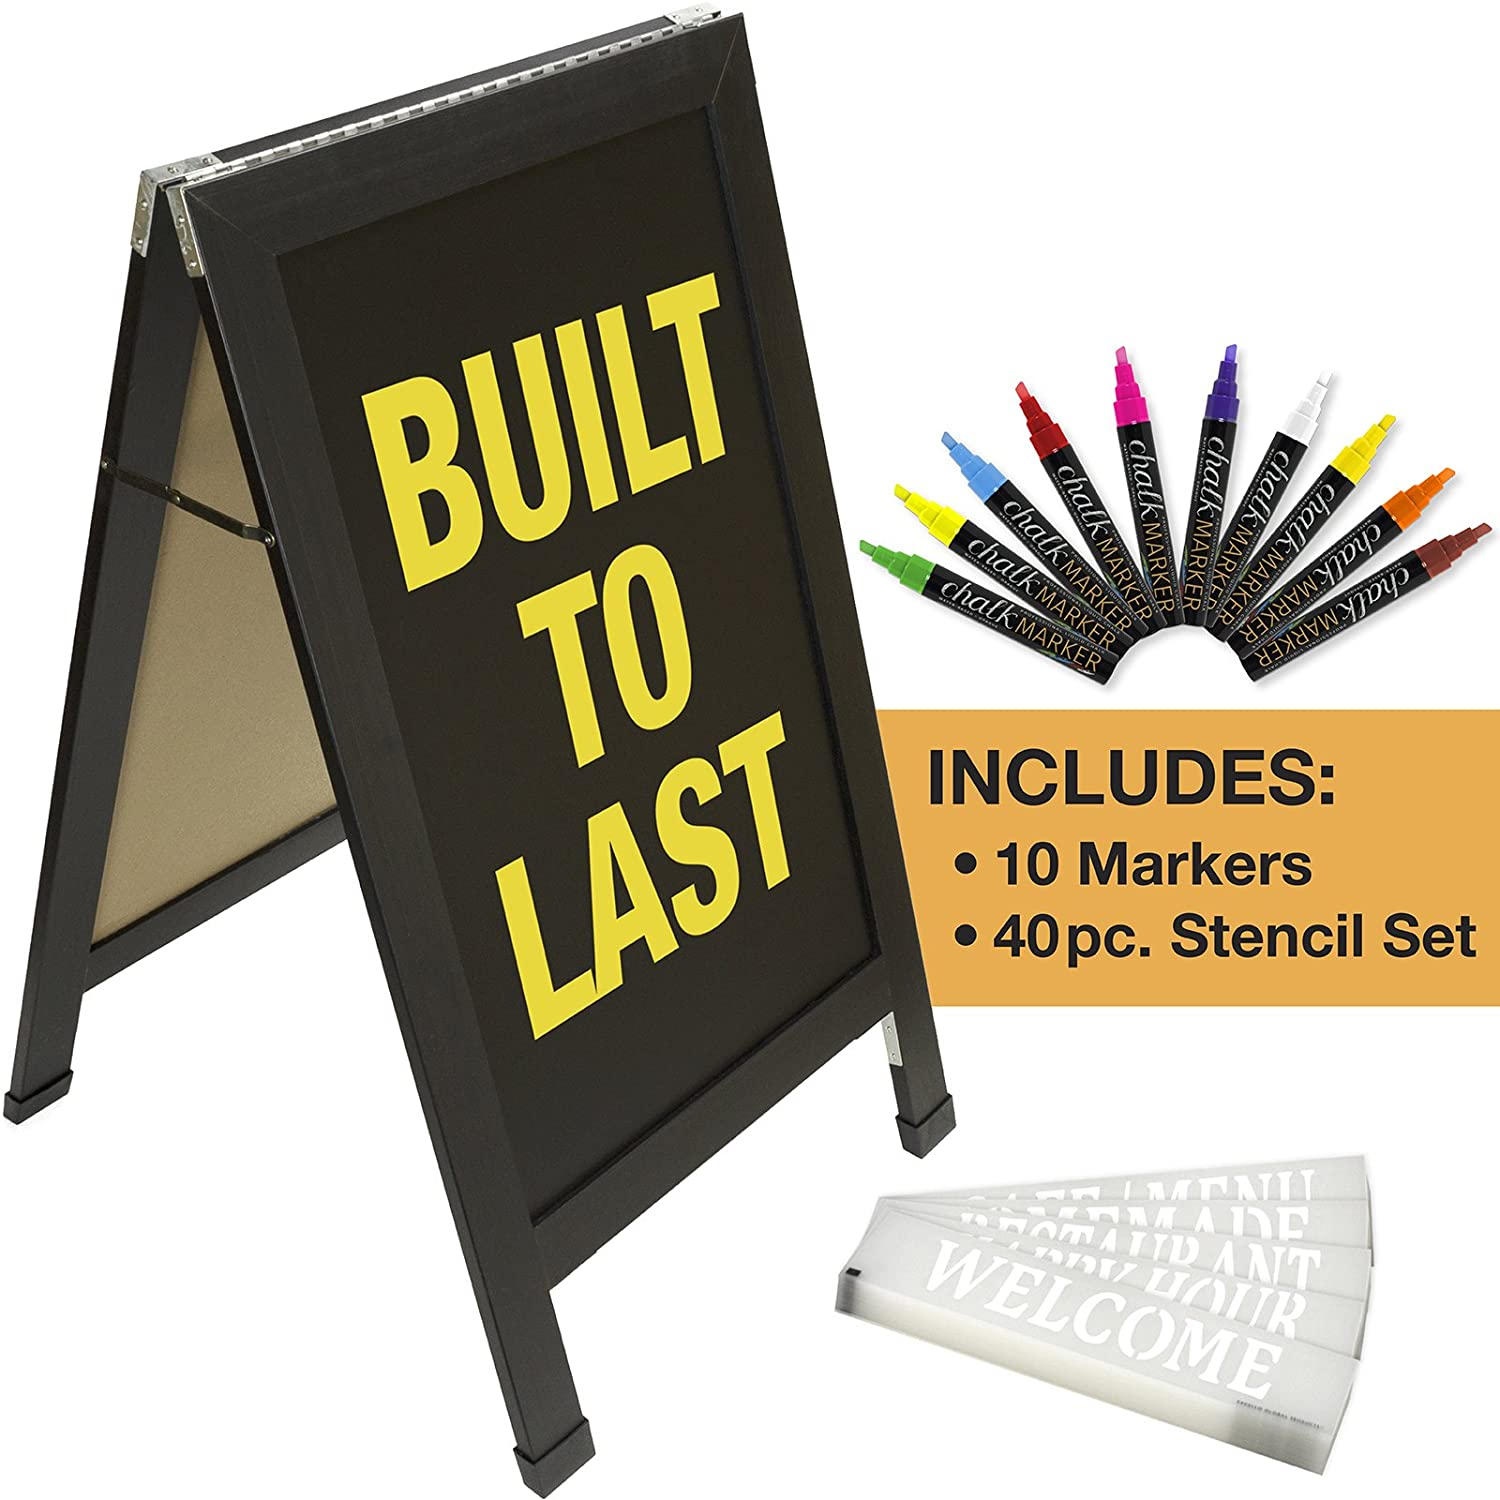 Sandwich Board Sidewalk Chalkboard Sign: Reinforced, Heavy-Duty / 10 Chalk Markers / 40 Piece Stencil Set/Chalk / Eraser/Double Sided/Large 40x23 Chalk Board Standing Sign A-Frame (Rustic) Excello Global Products EGP-CKB-0010